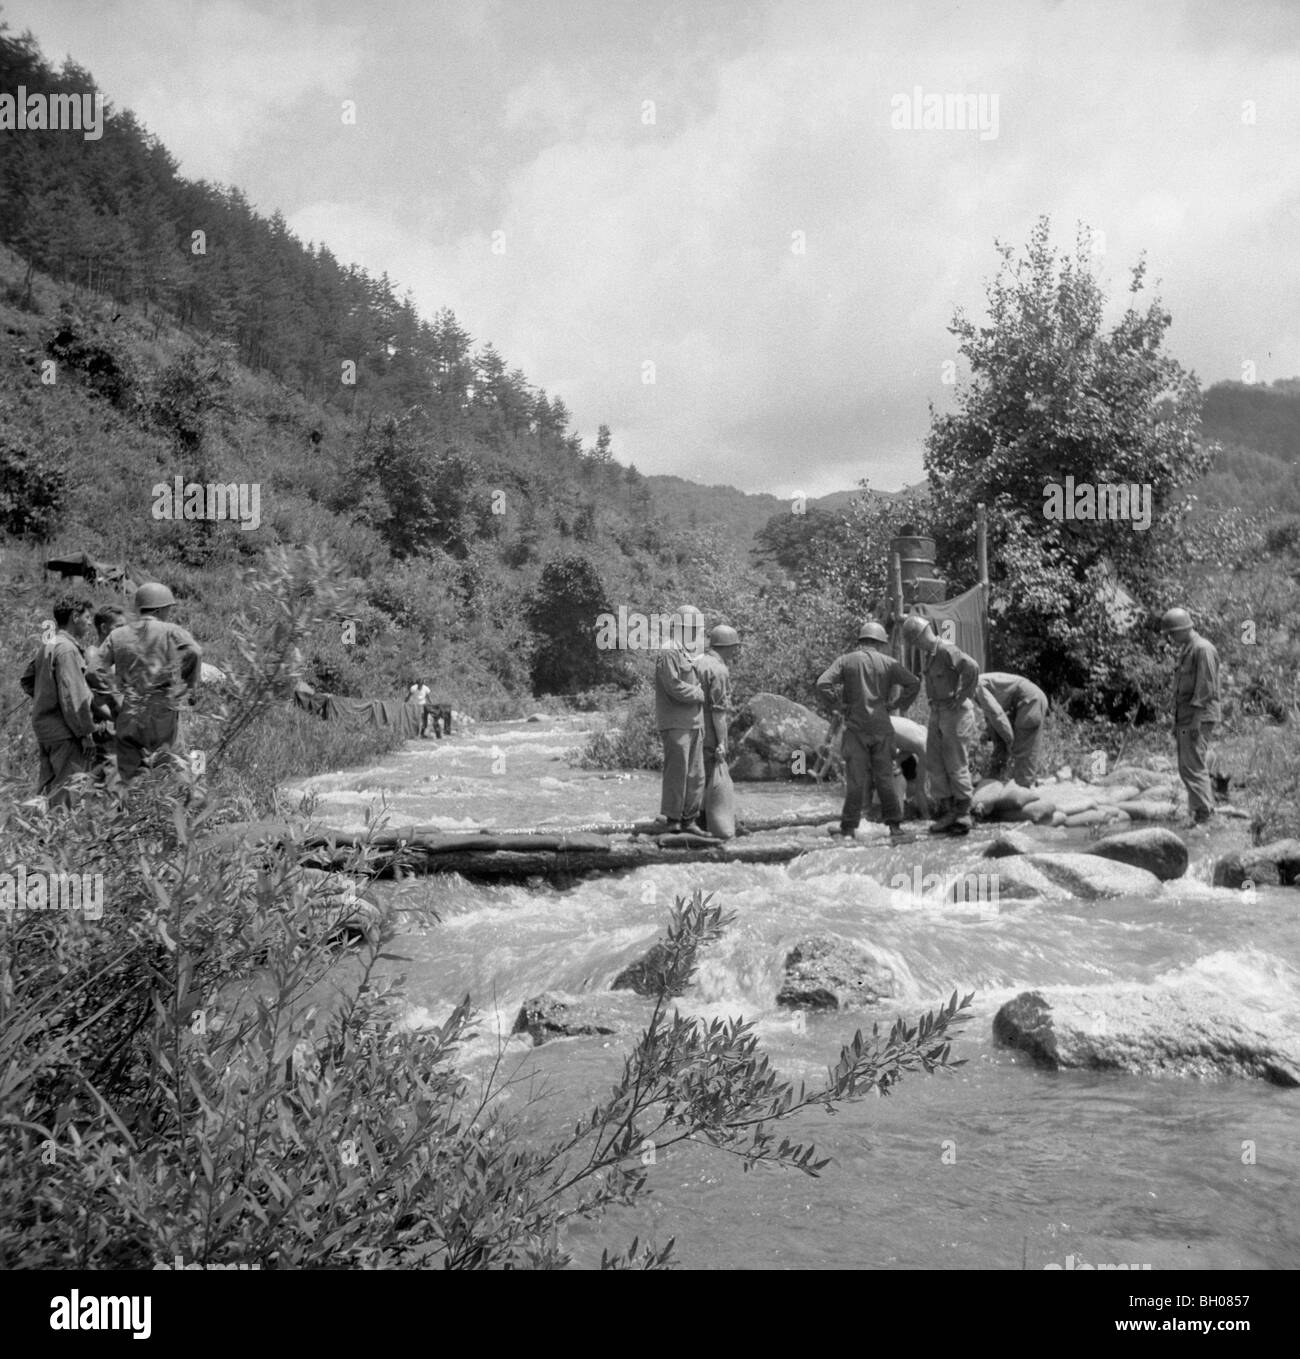 account of the division of korea and the korean war The korean war began 25 june 1950, when north korean armed forces invaded  south korea the war's combat phase lasted until an armistice was signed 27.